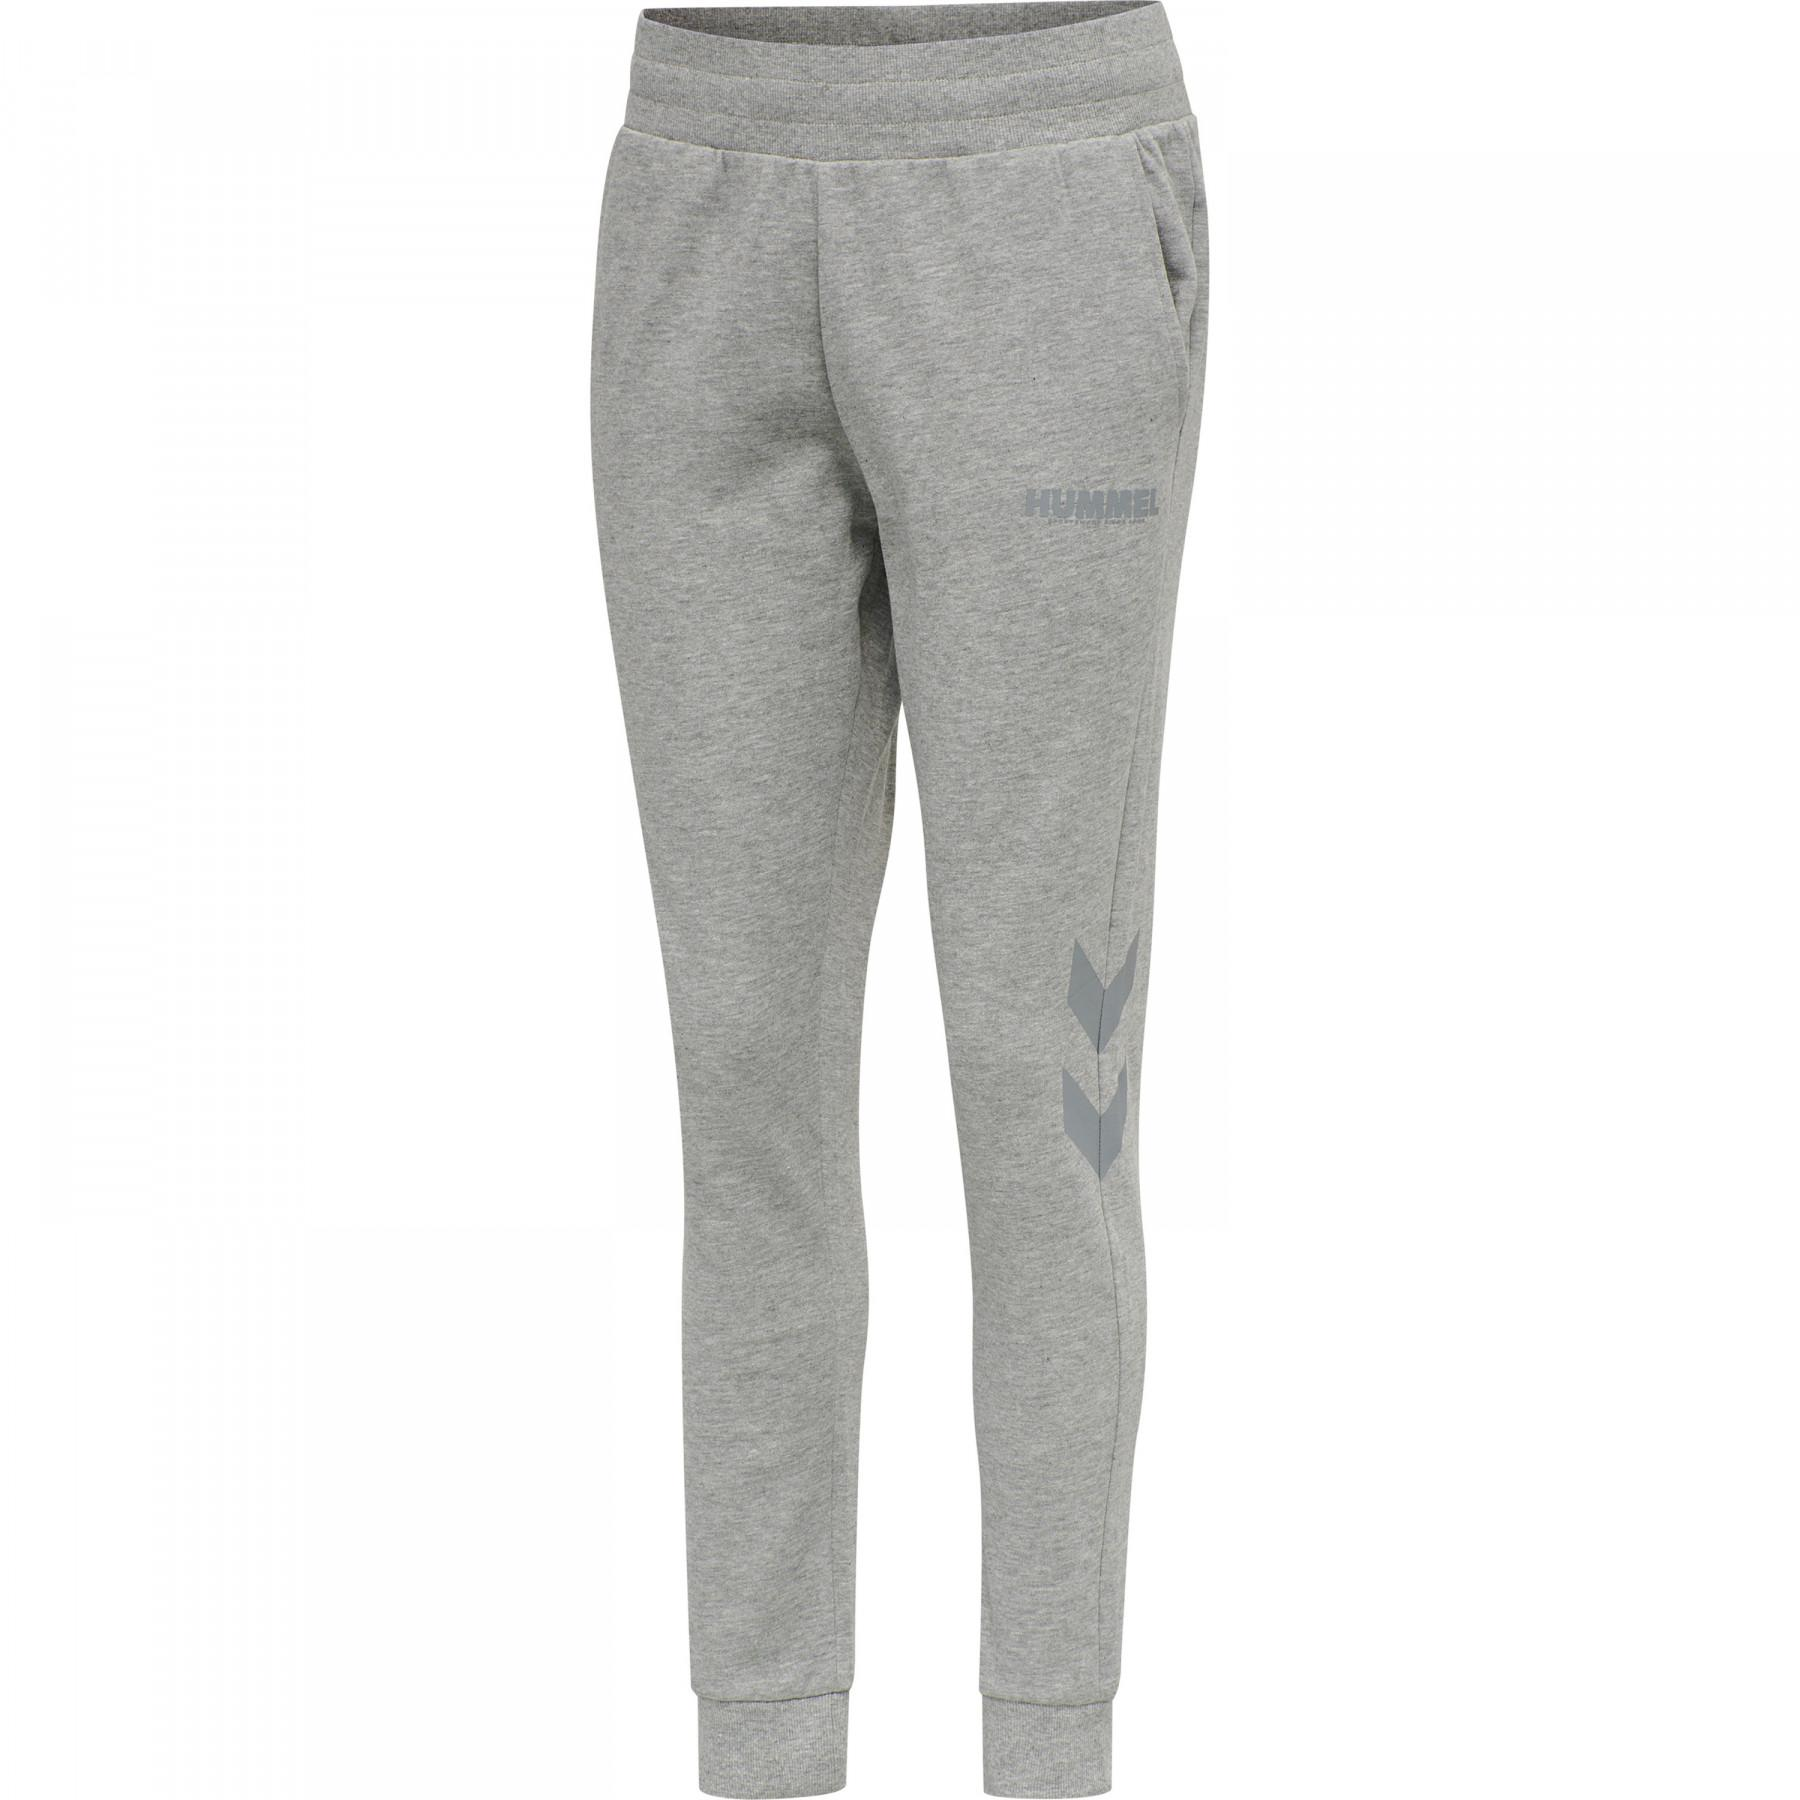 Women's trousers Hummel hmllegacy tapered